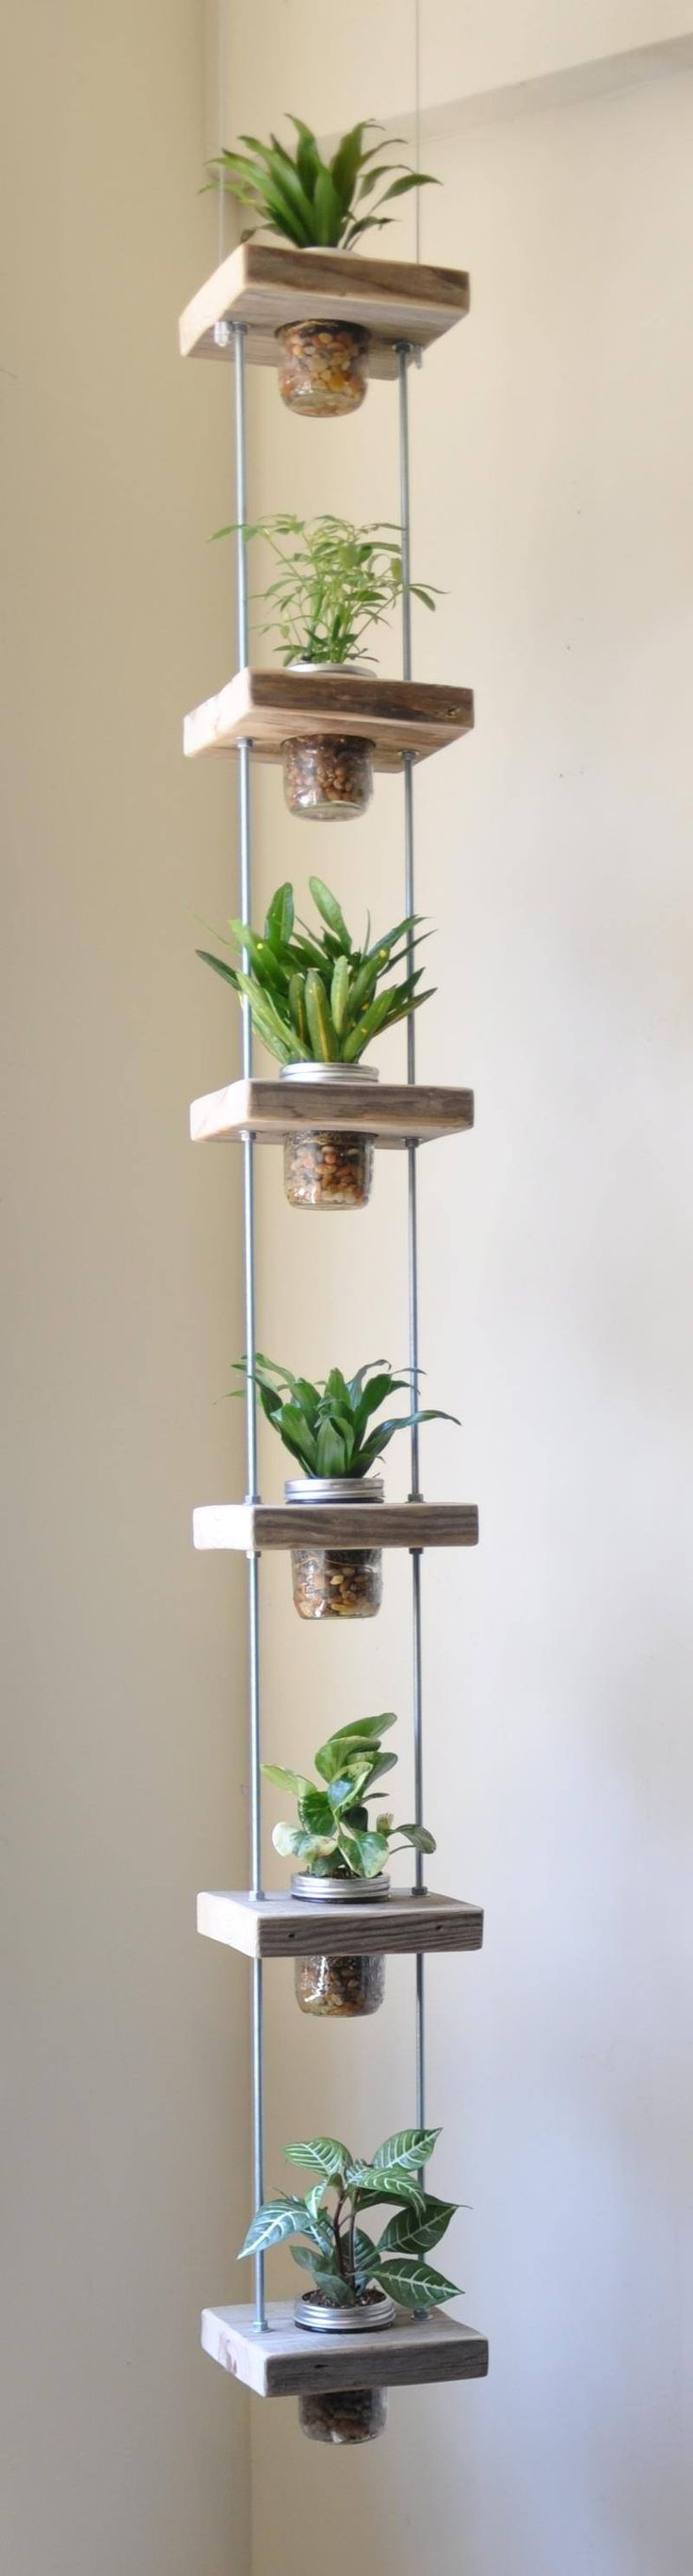 best diy wall planter images on pinterest balcony gardening